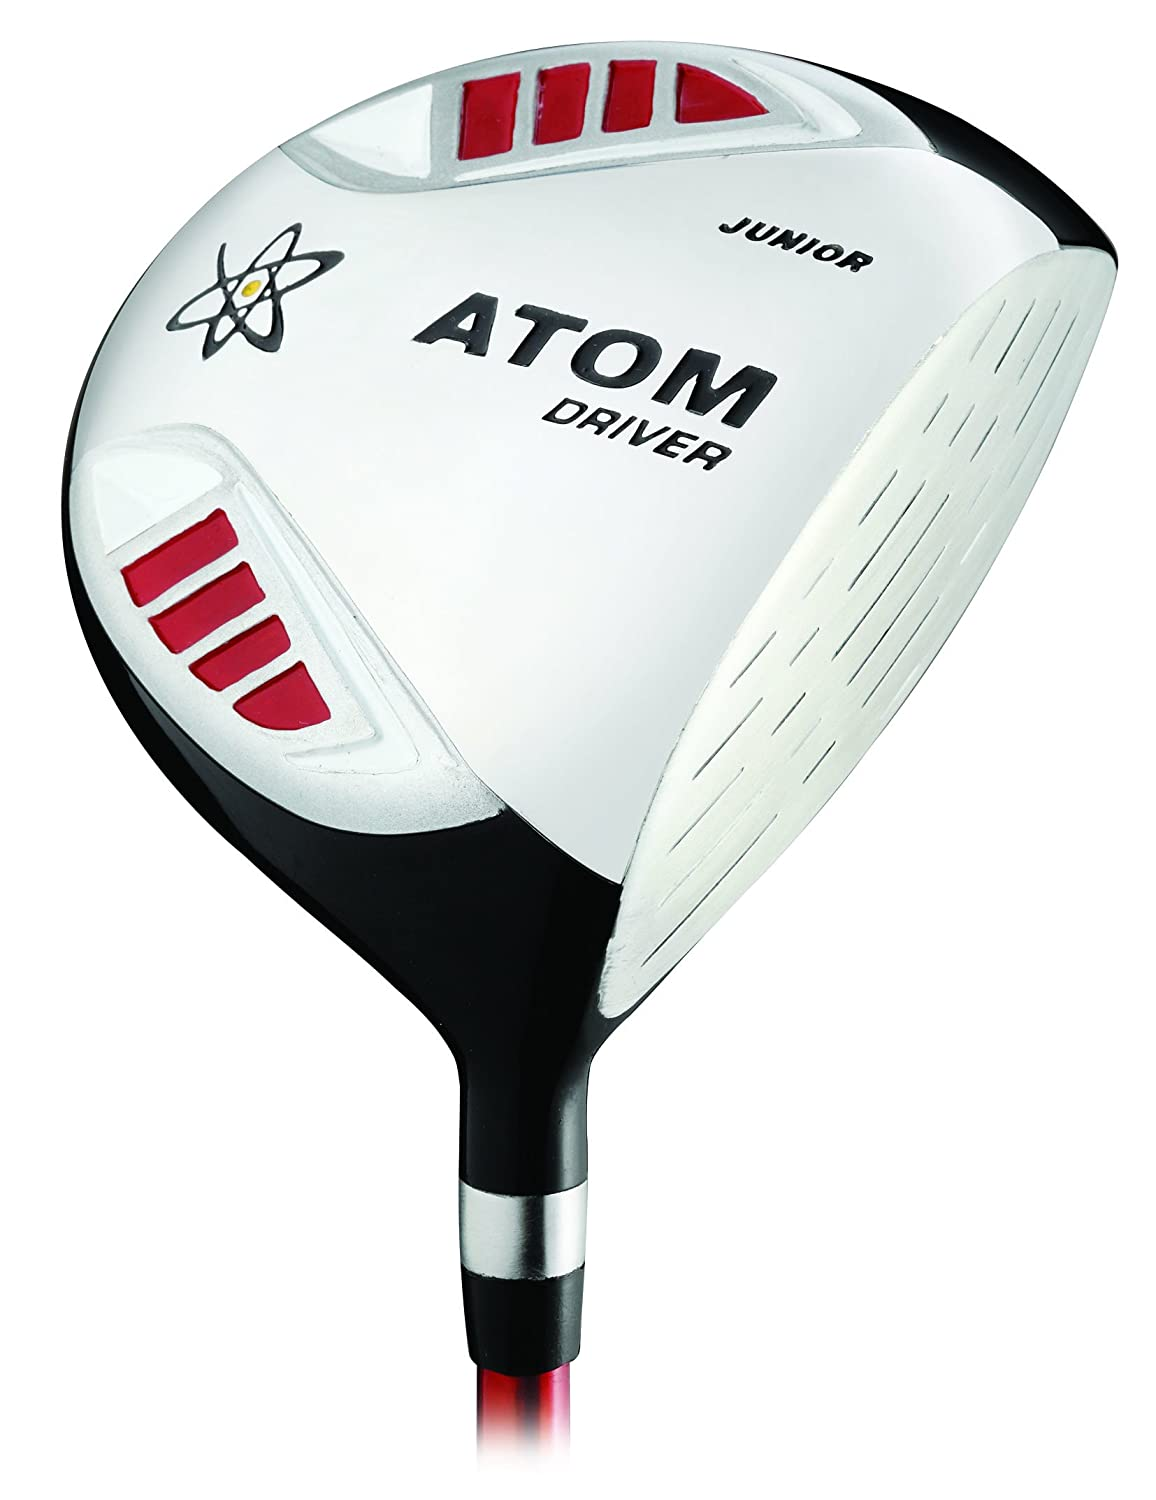 Founders Club Atom Complete Junior Golf Set, Youth 45-54 Tall, Ages 6-10, Right-Handed